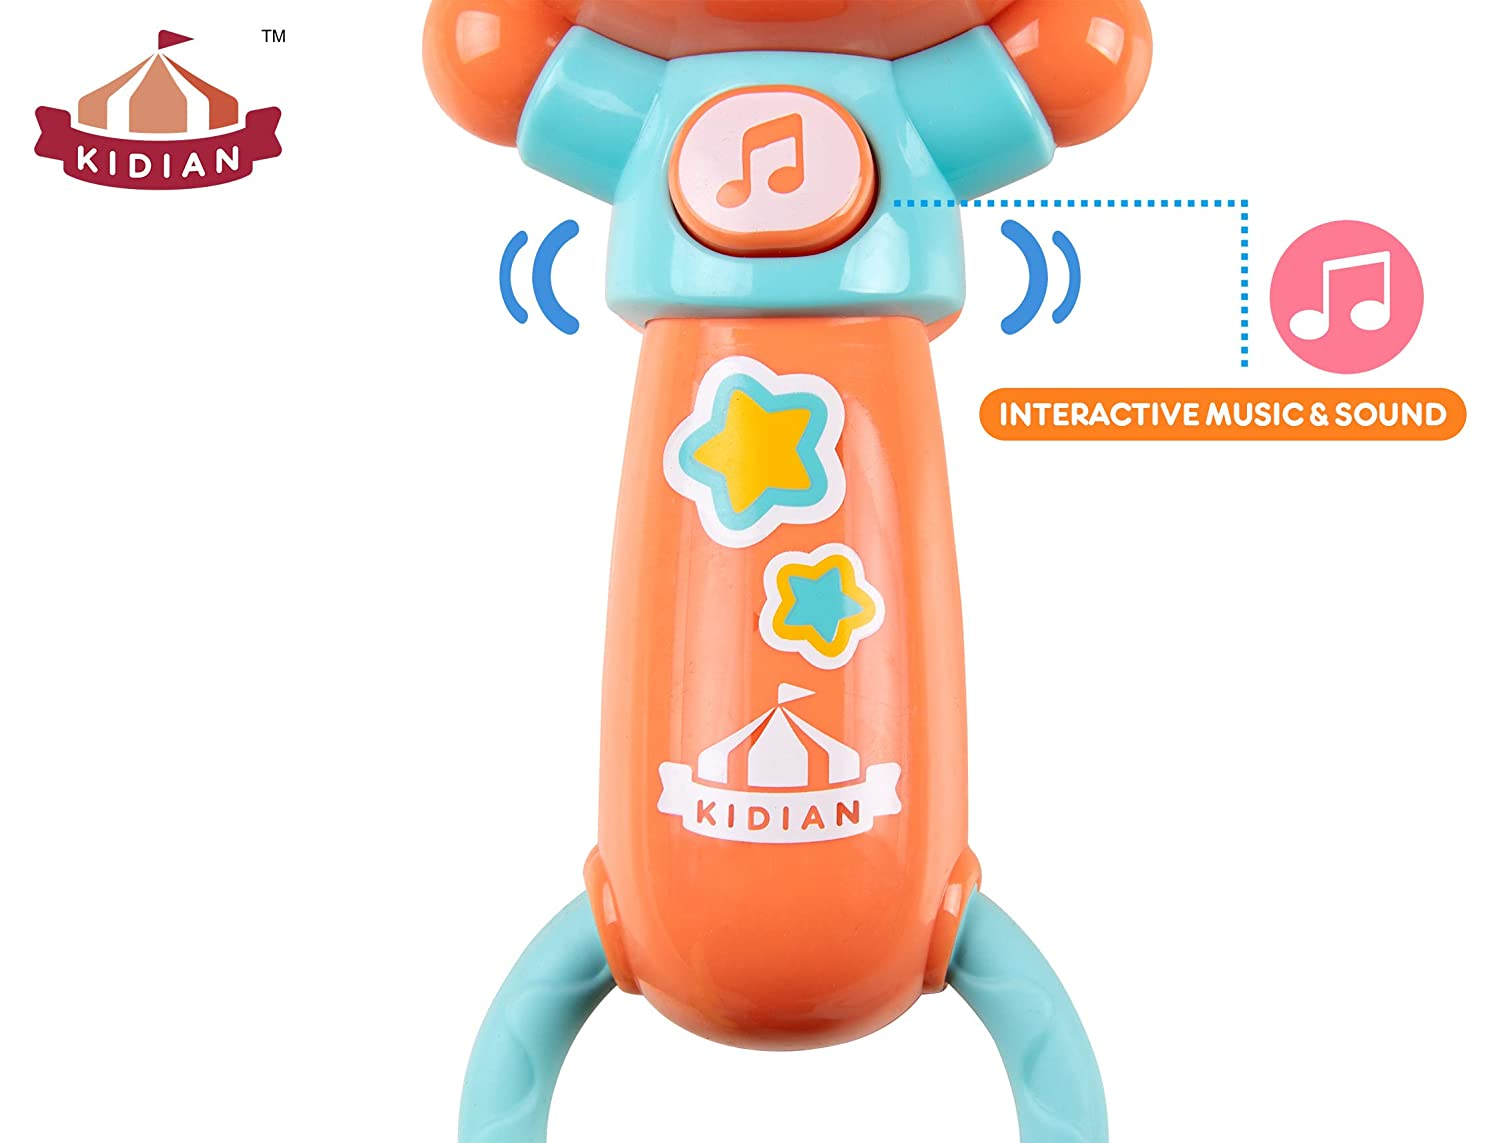 Baby Rattle and Teether Toy Kidian Baby Rattle Shake and Jam Rattle Infant Rattle for 6 Months and Up by Flybar Dog